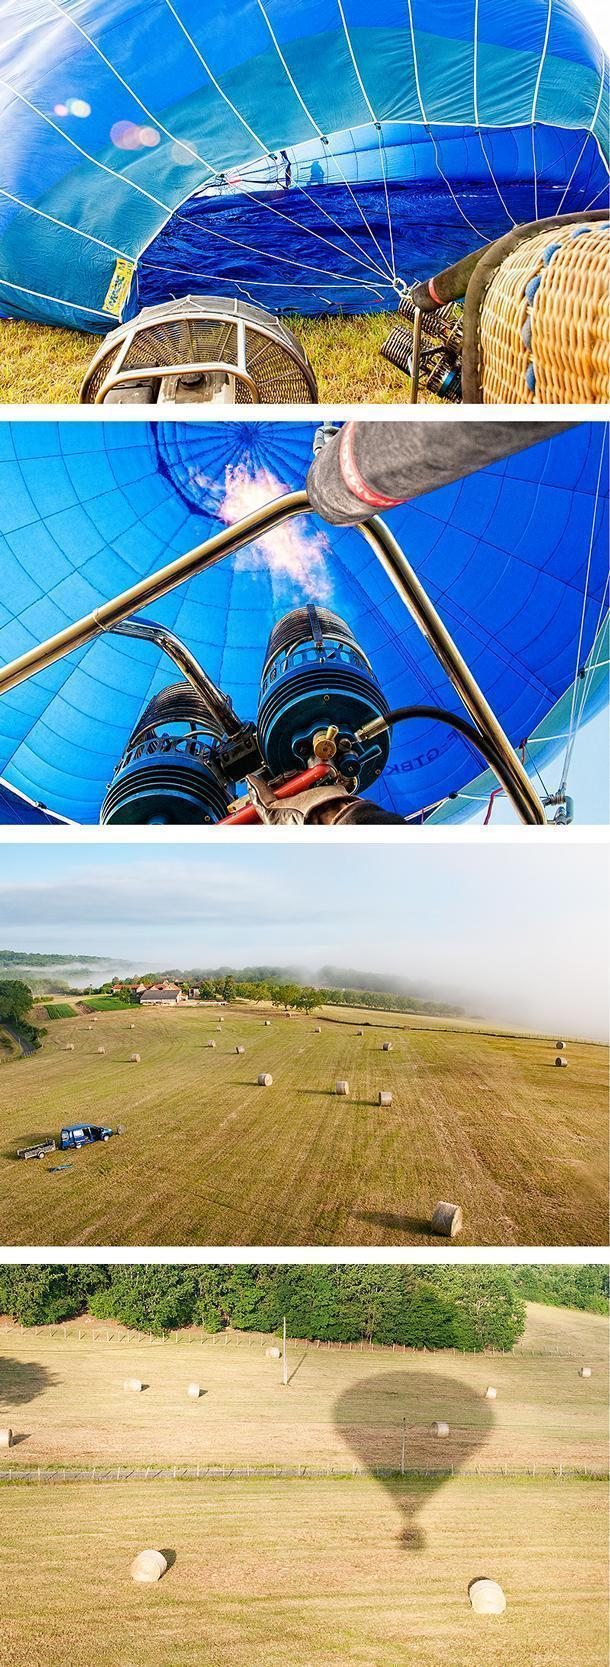 Up, up, and away! Our balloon rises into the air over the Dordogne Valley